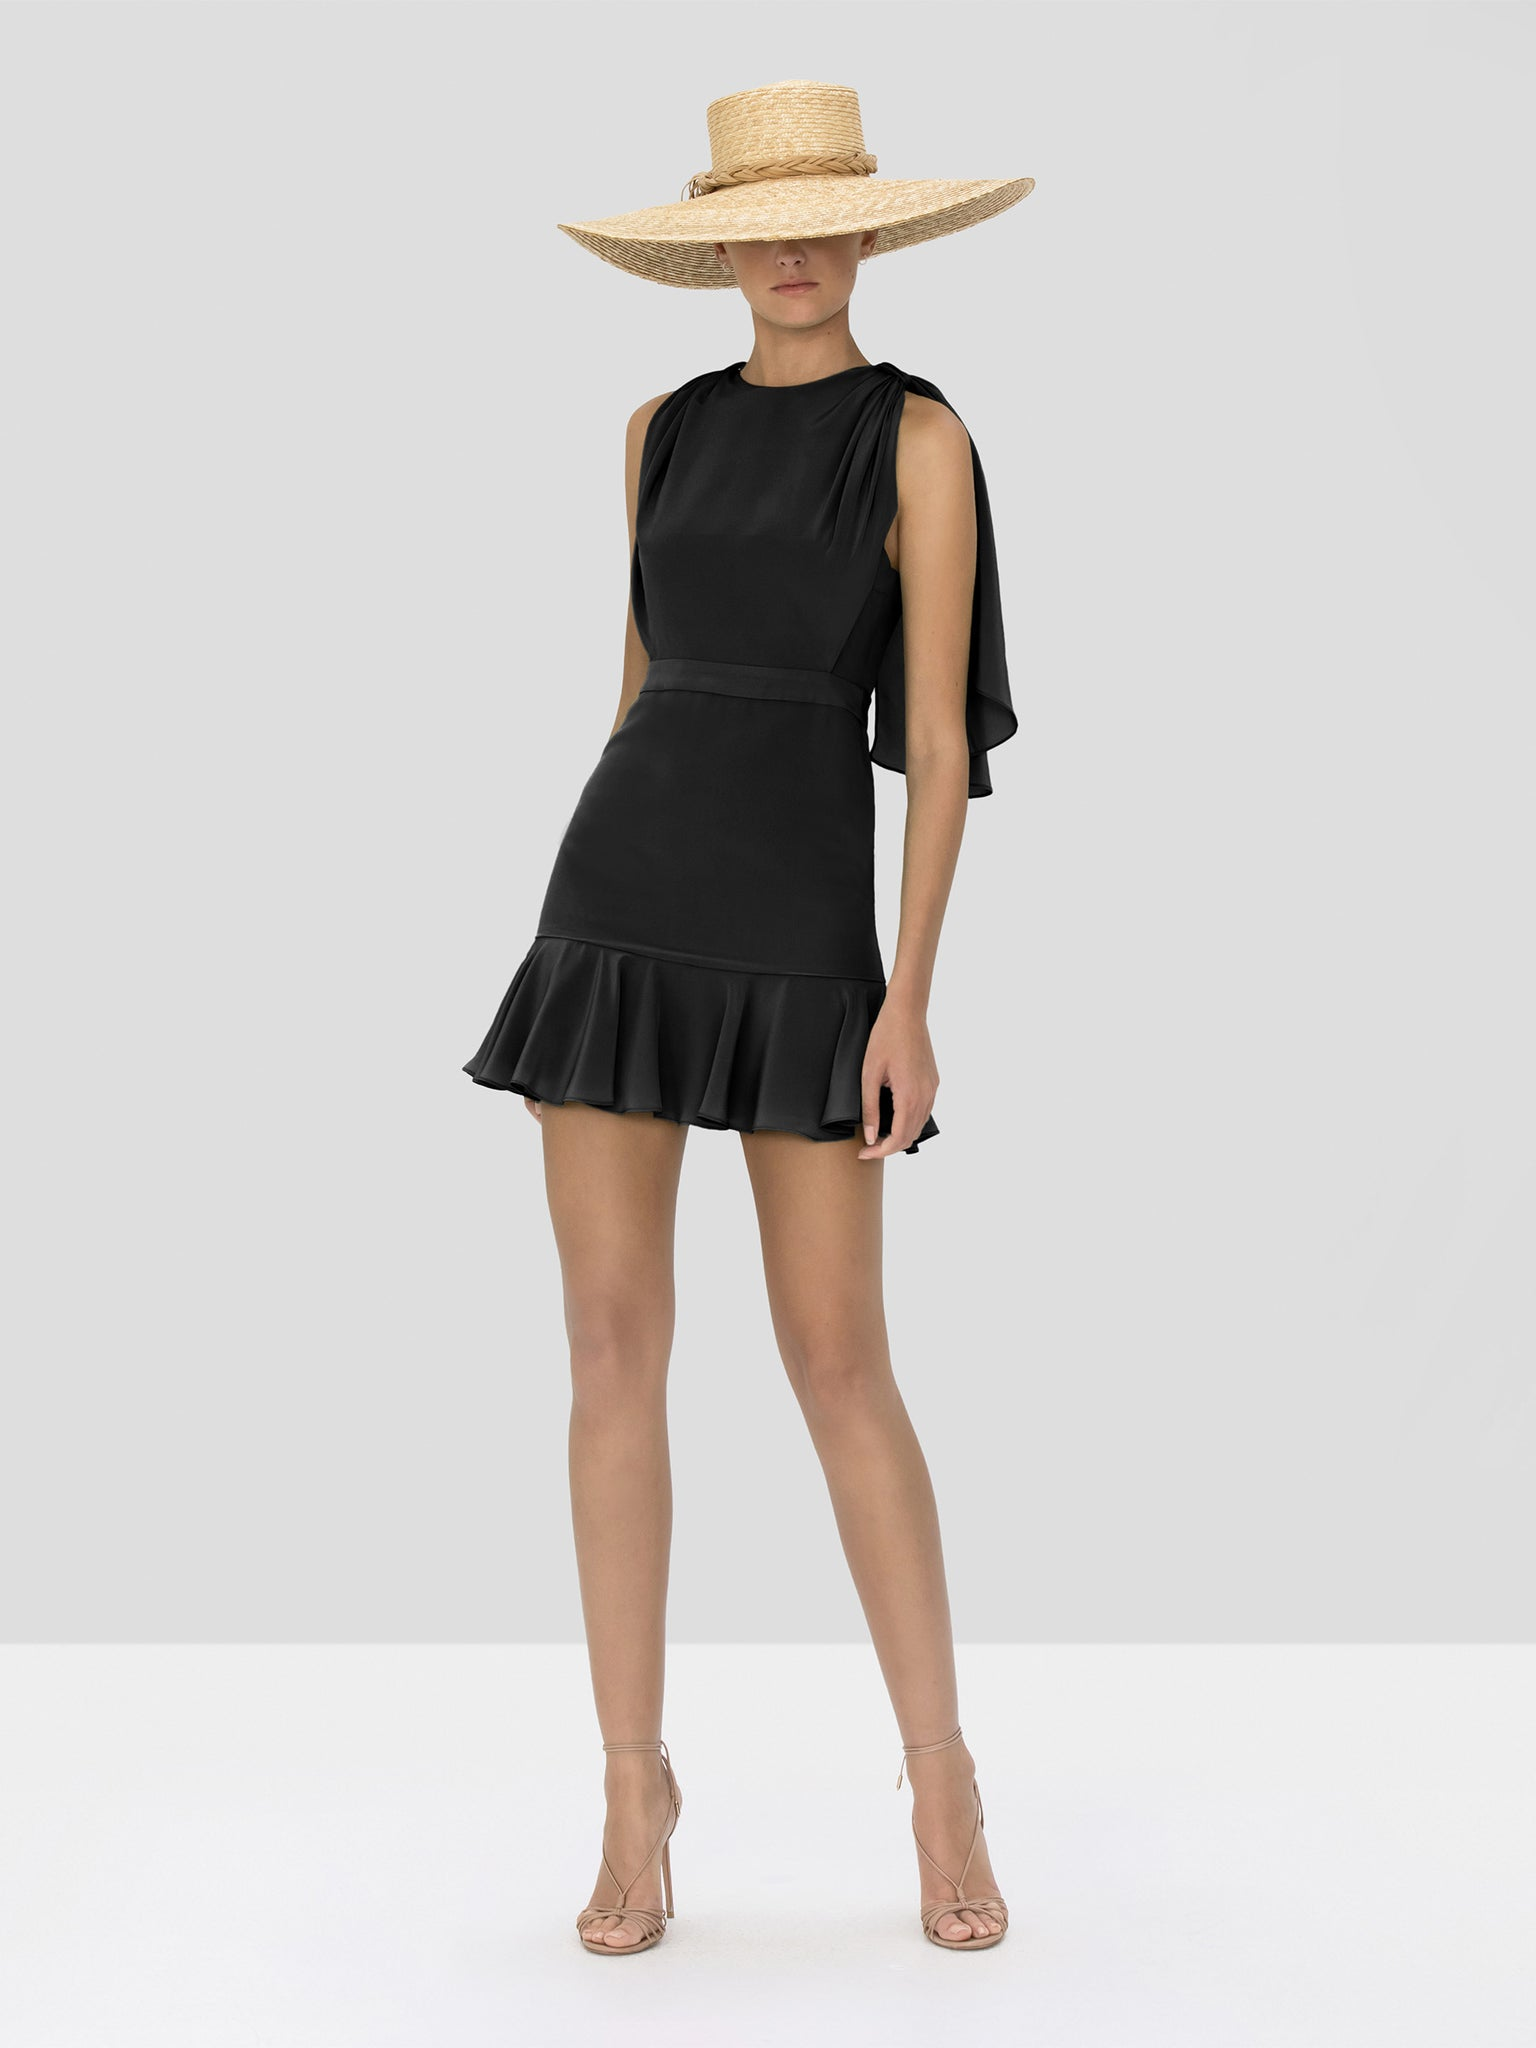 Alexis Tensia Dress in Black from Spring Summer 2020 Collection